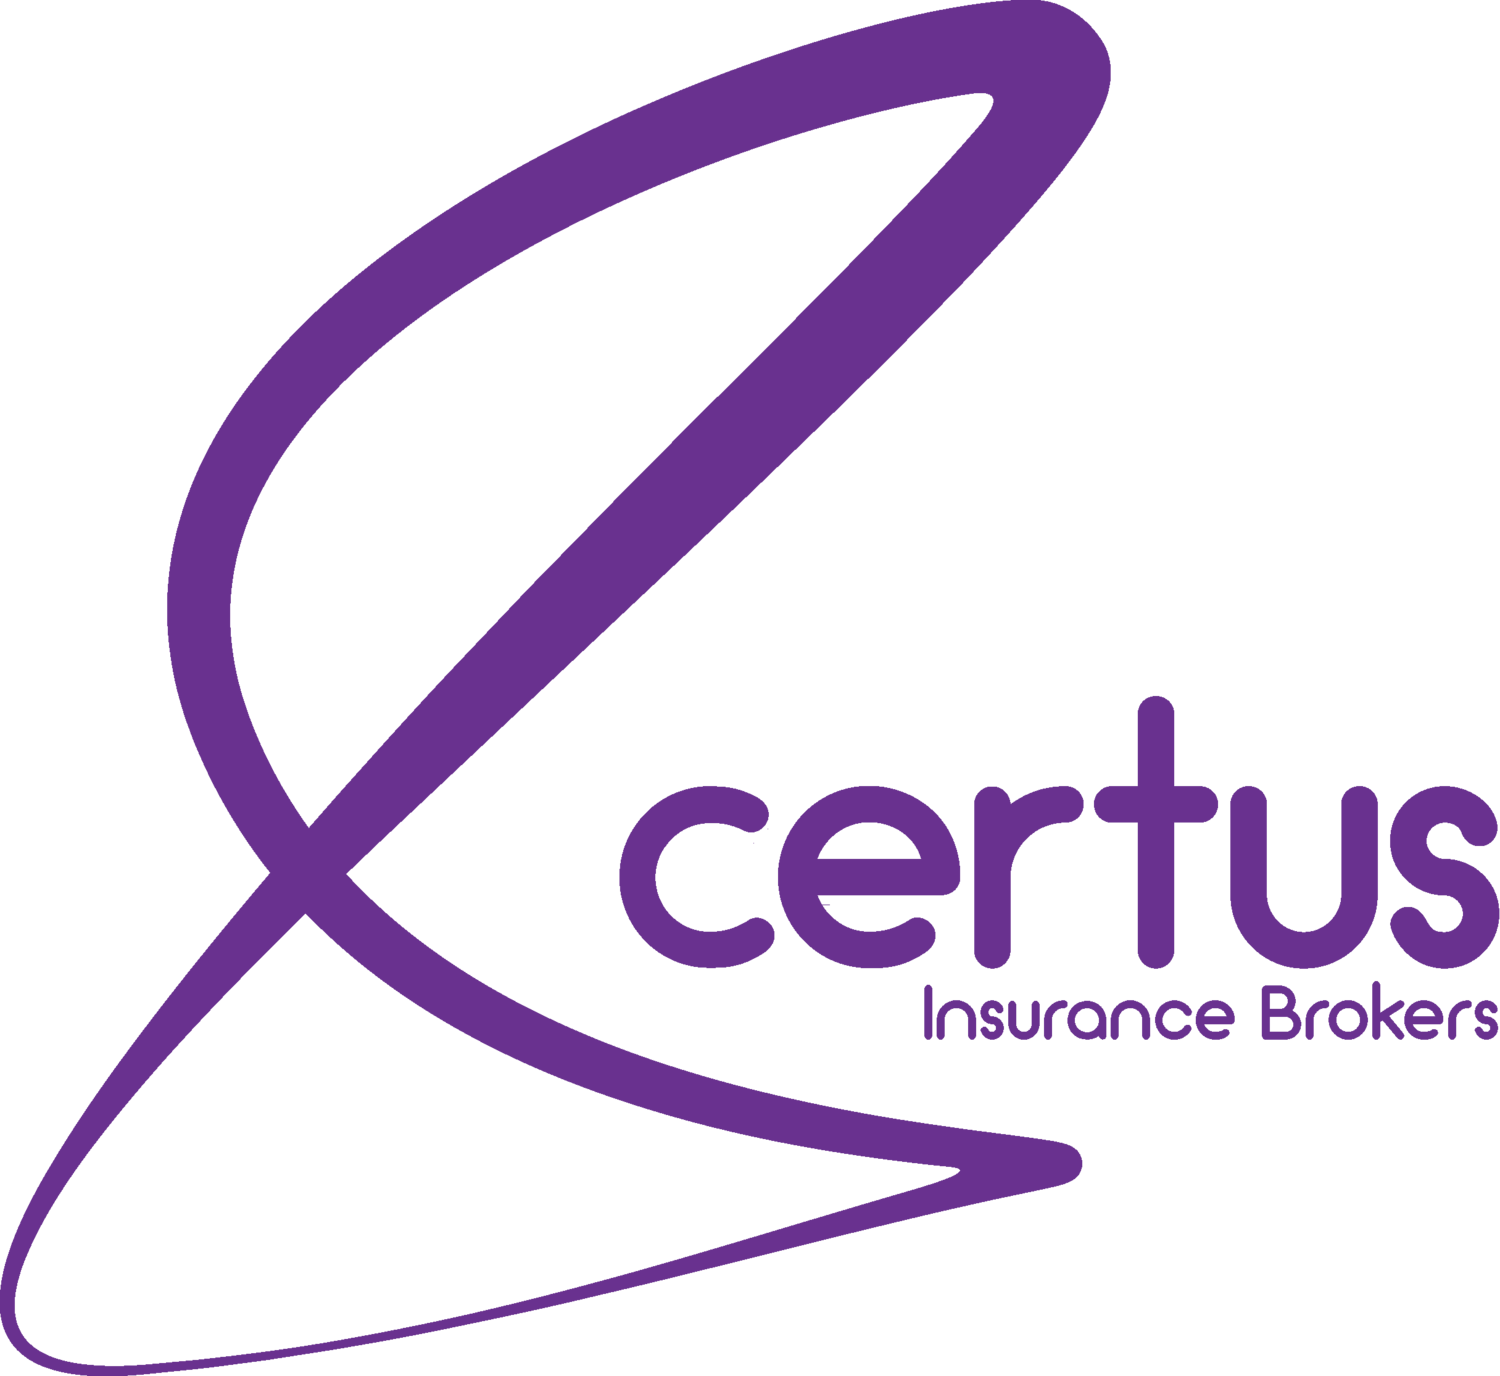 Certus Insurance Brokers